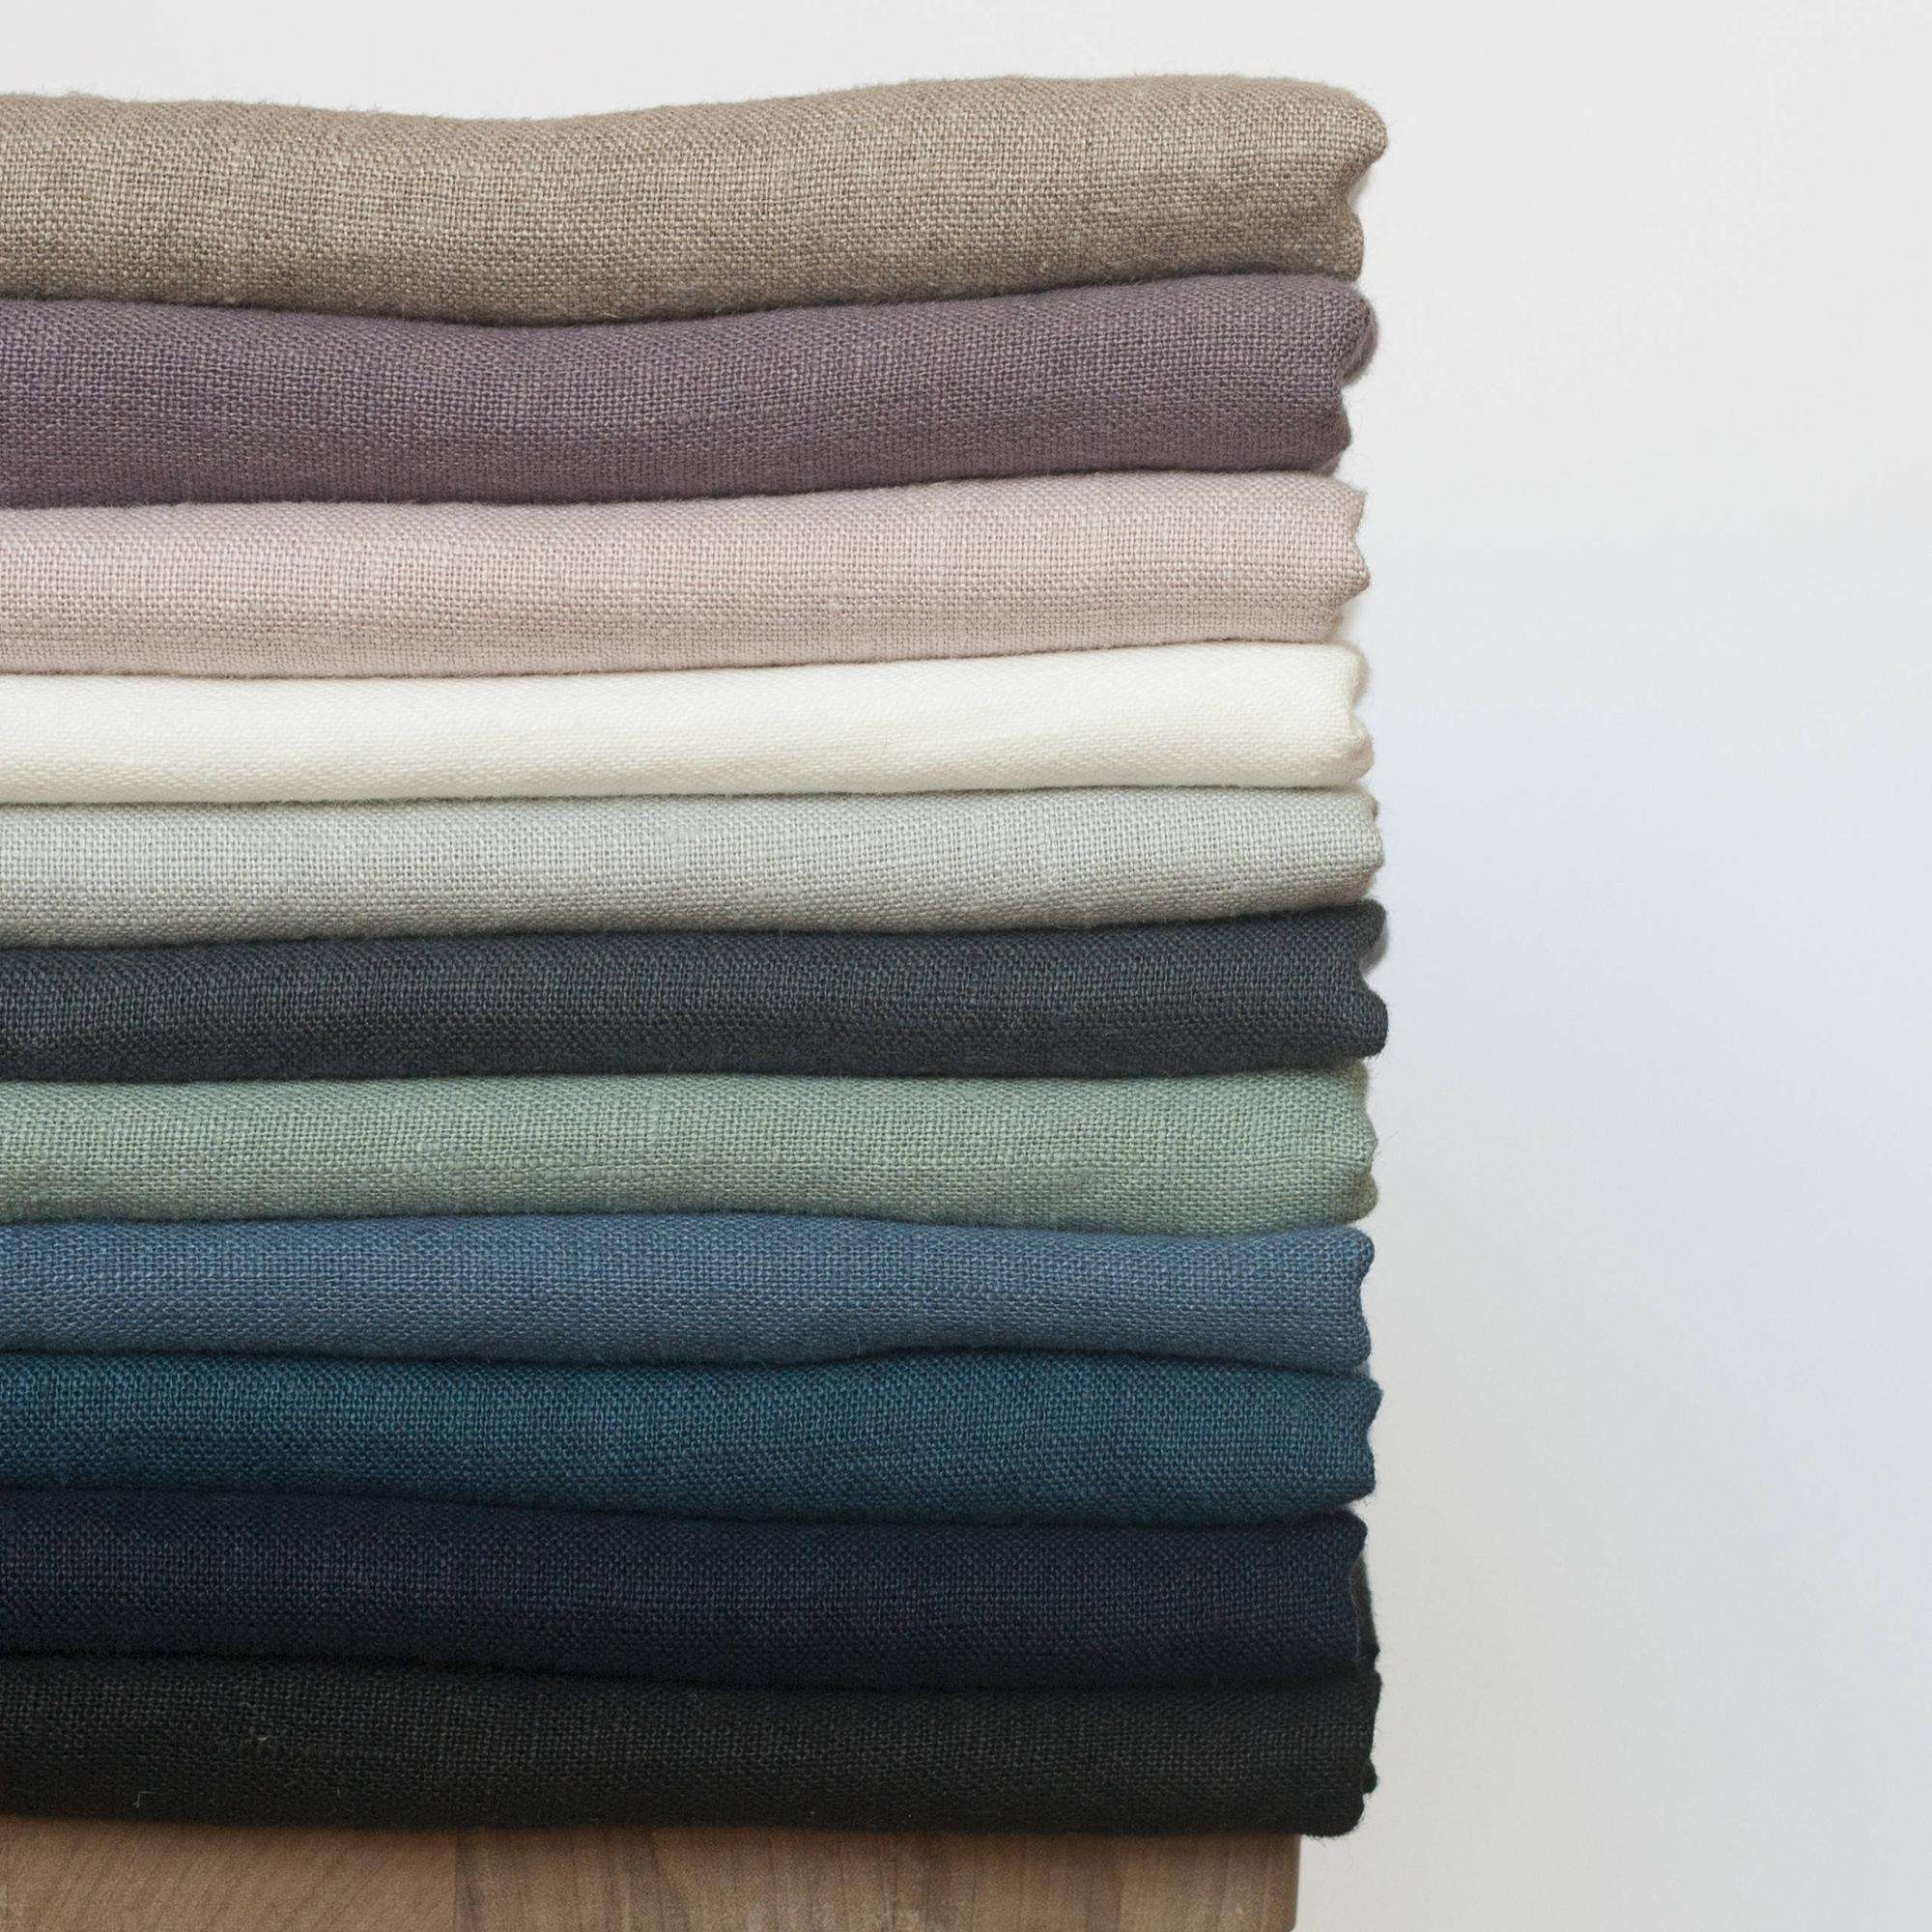 100% French Linen fabric, Flax linen bed sheets fabric wholesale